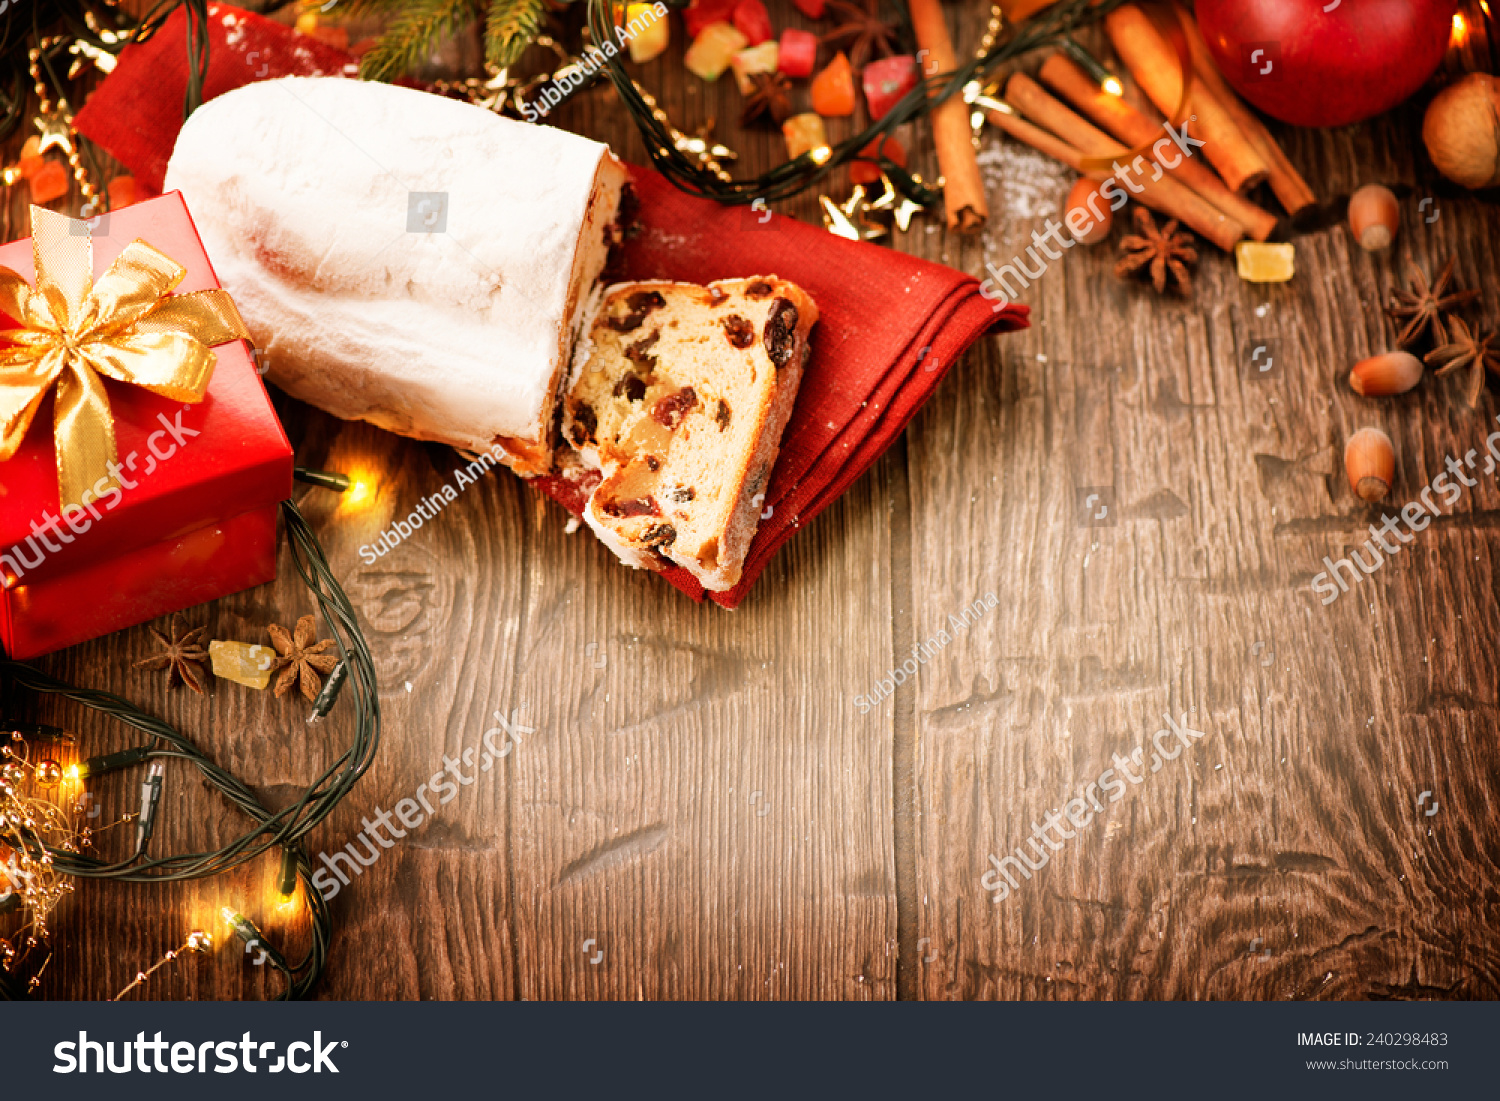 new year table christmas food border design stollen traditional sweet fruit loaf